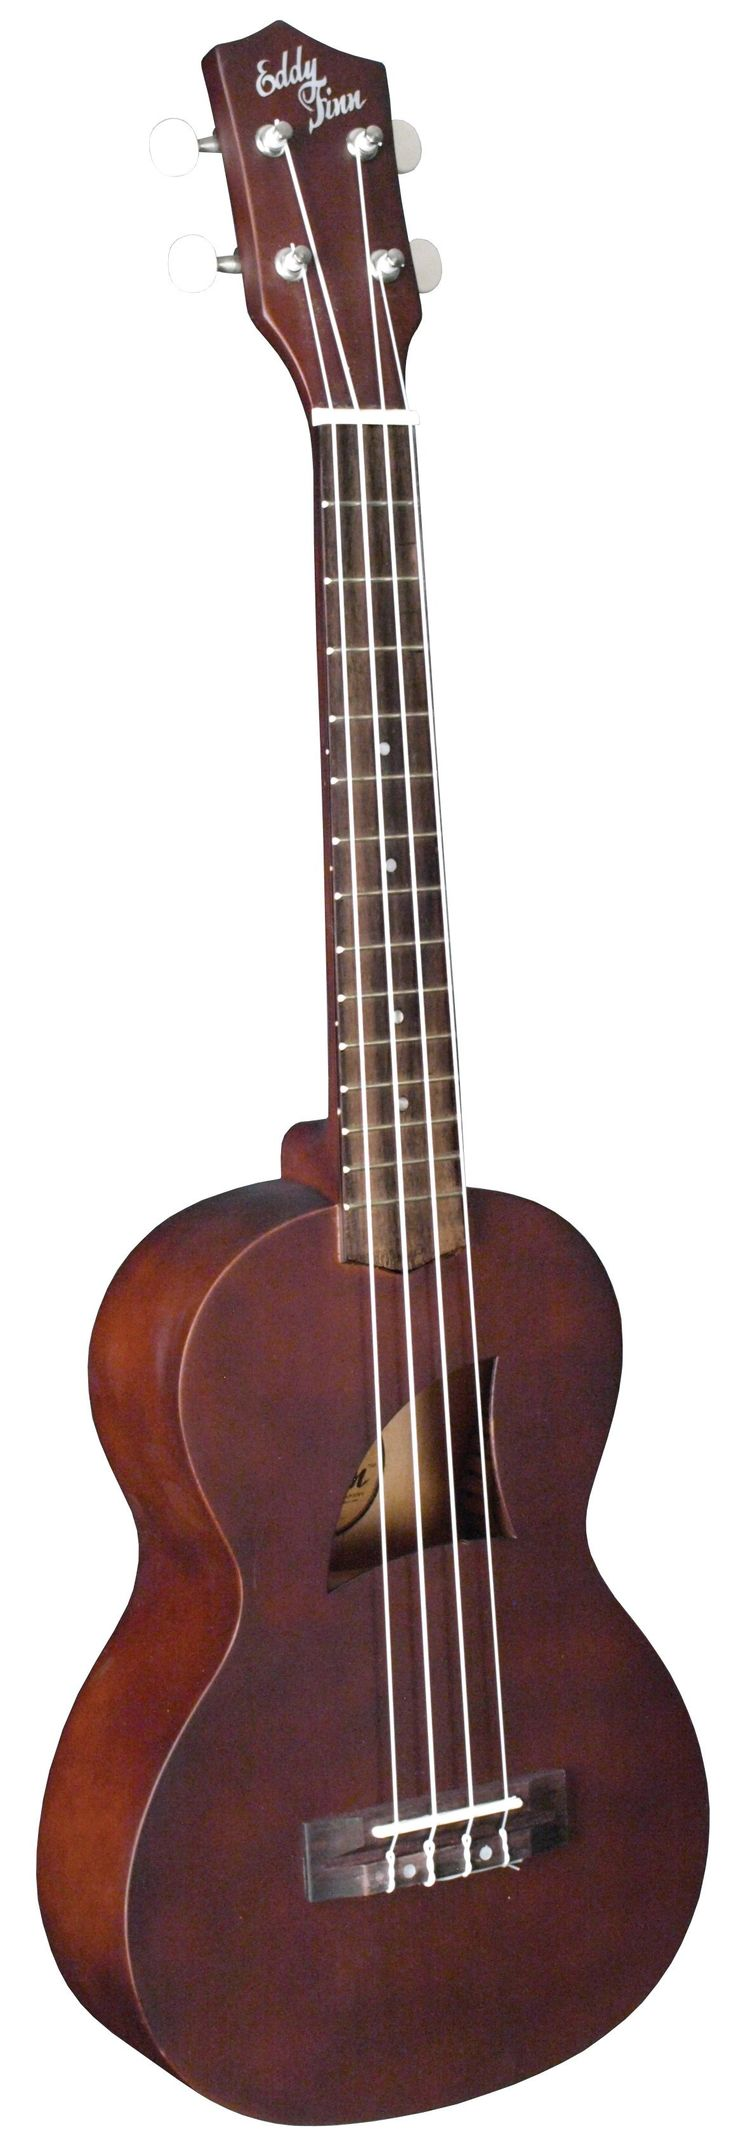 Eddy Finn® Basswood Series Ukulele with Aquila Strings